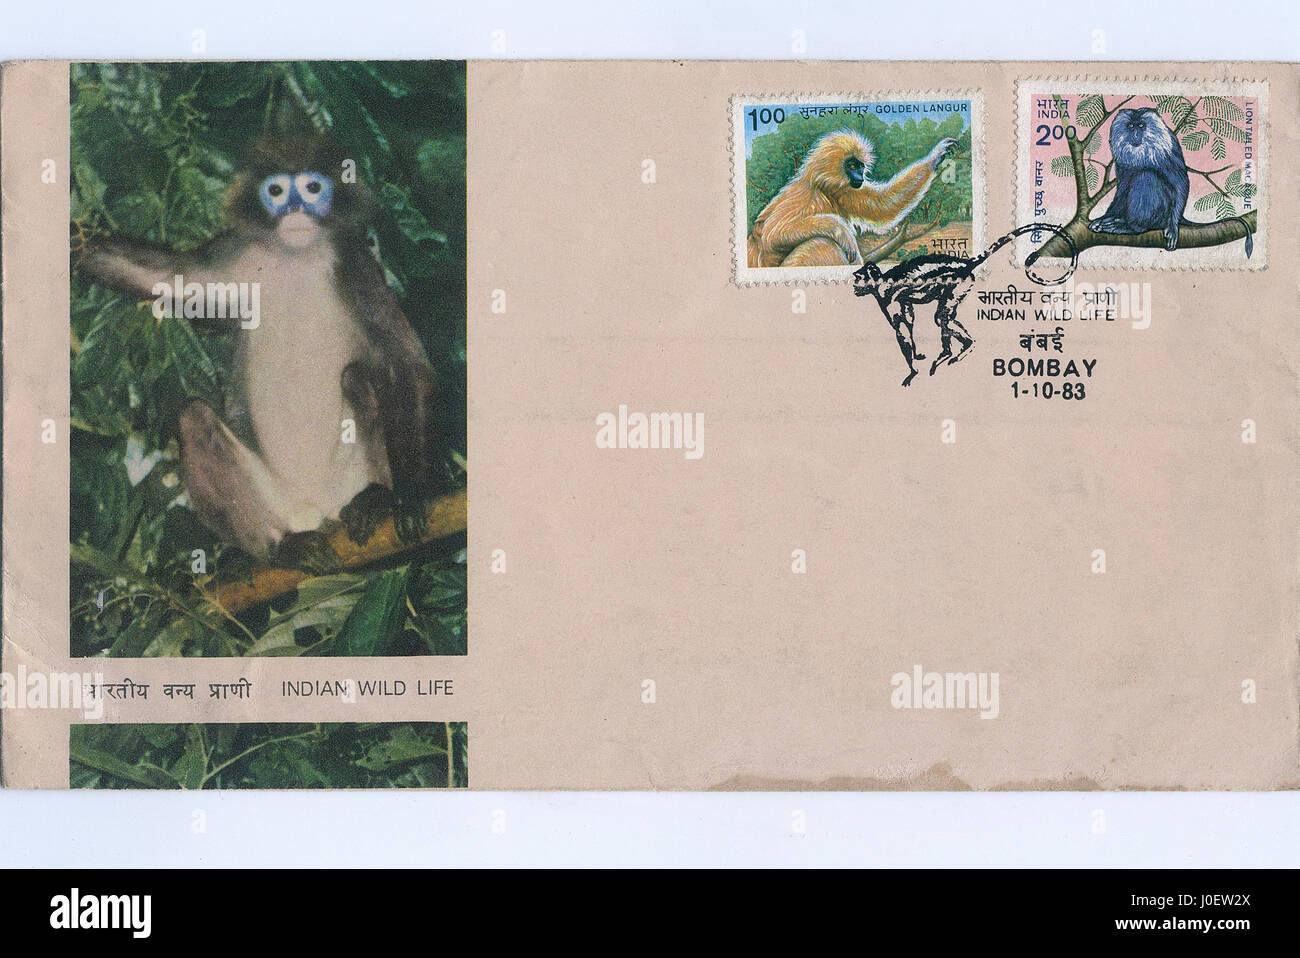 First day cover of wild life, india, asia - Stock Image